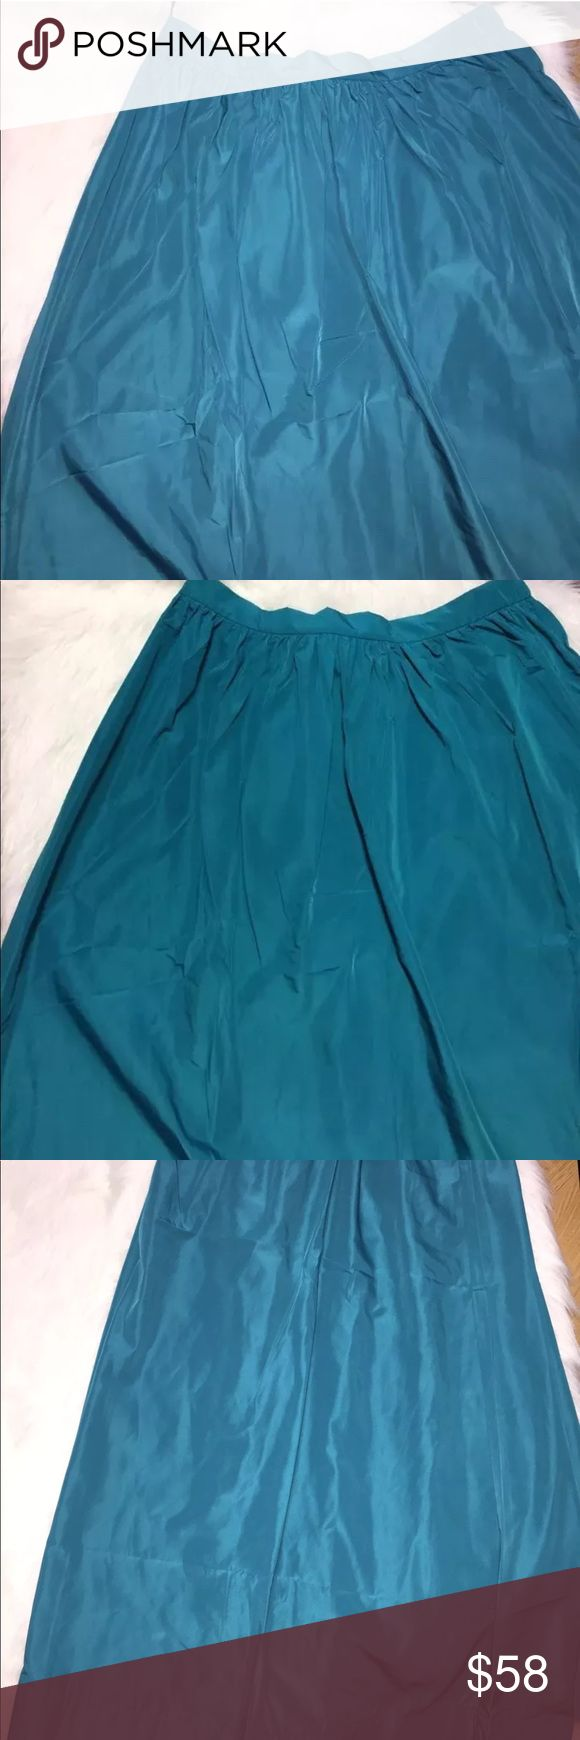 Eloquii teal maxi skirt with pockets New Eloquii teal maxi skirt with pockets and elastic waistband. 100% polyester. 19 inch waist and 43 inches long. Eloquii Skirts Maxi